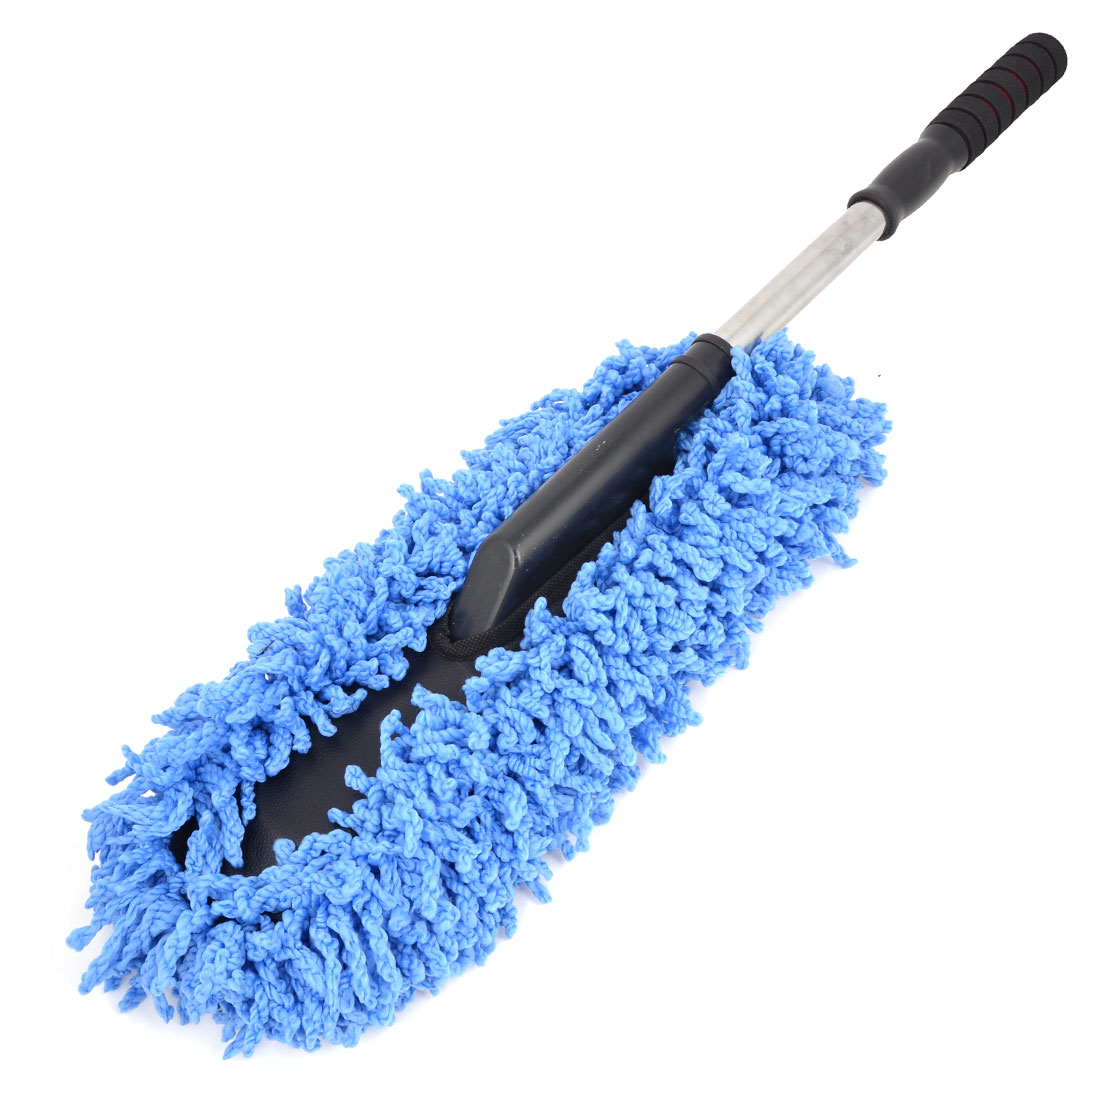 "28.3"" Long Blue Black Handle Soft Microfiber Car Clean Brush Dust Cleaning Tool"